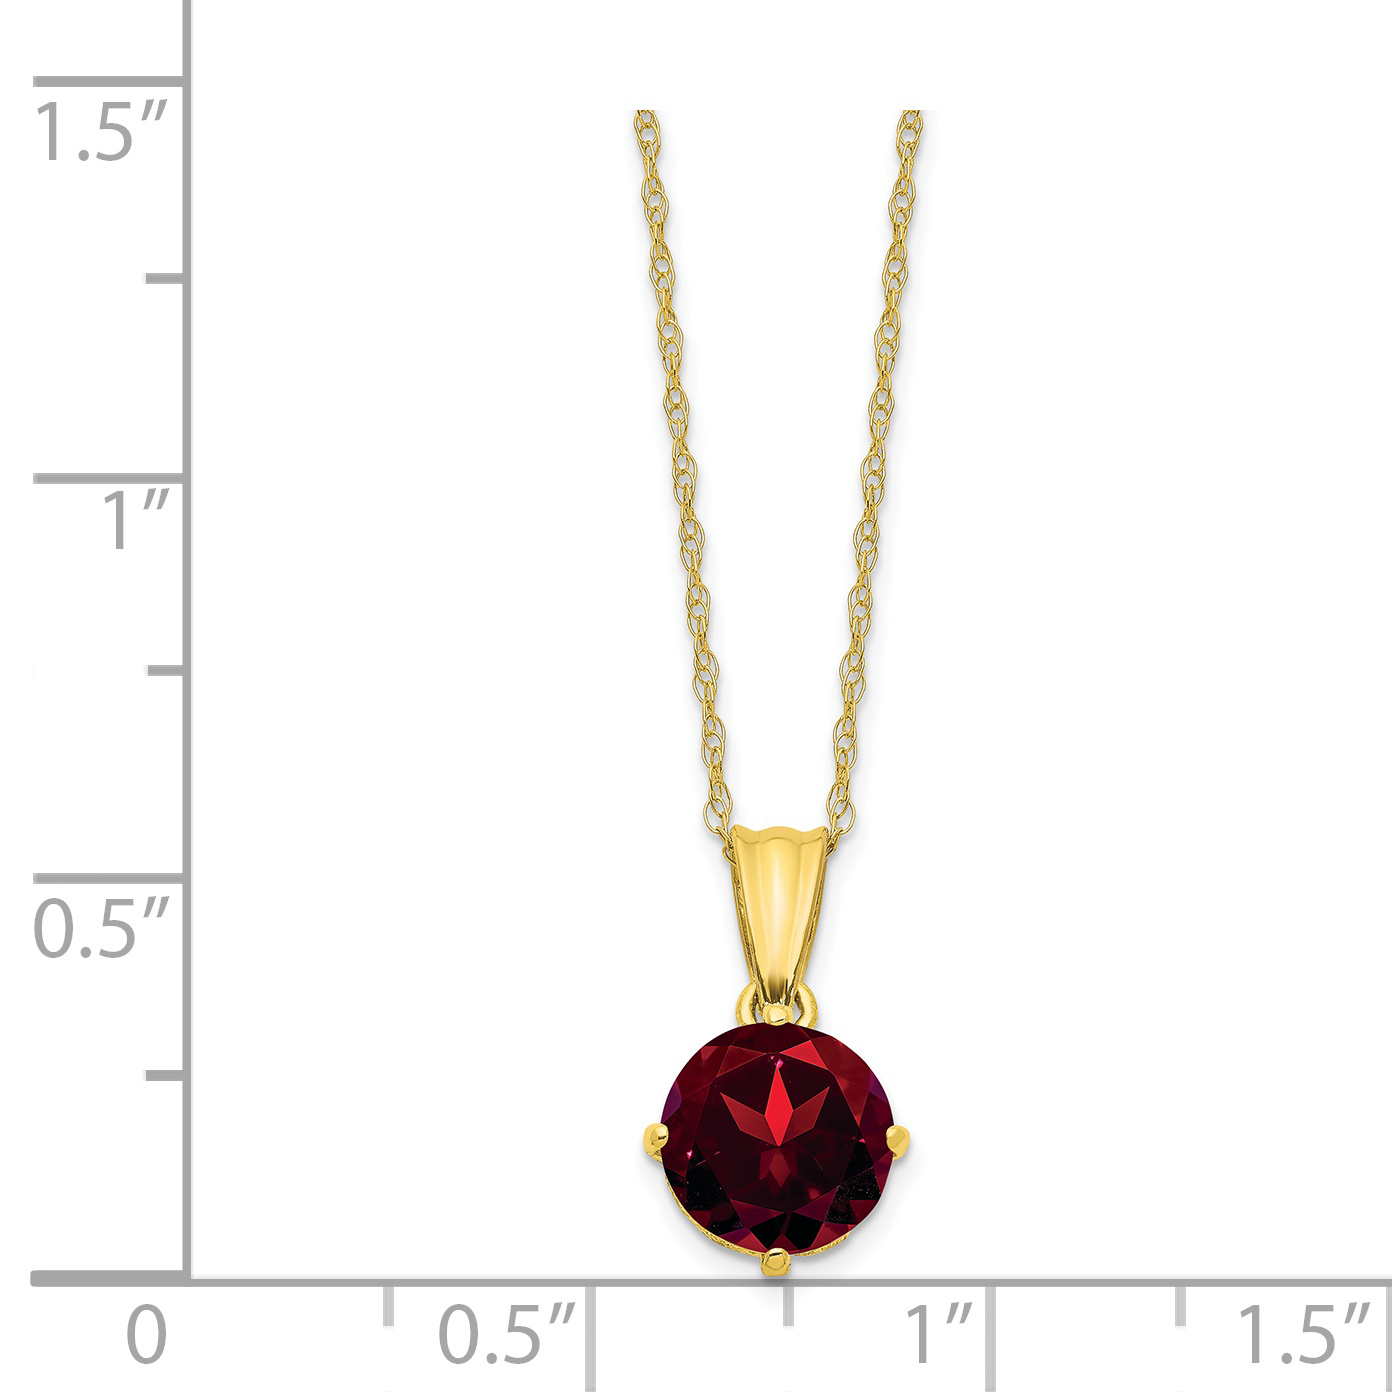 10K Yellow Gold Tiara Collection Polished Diamond Garnet Necklace 18 Inch - image 2 de 3